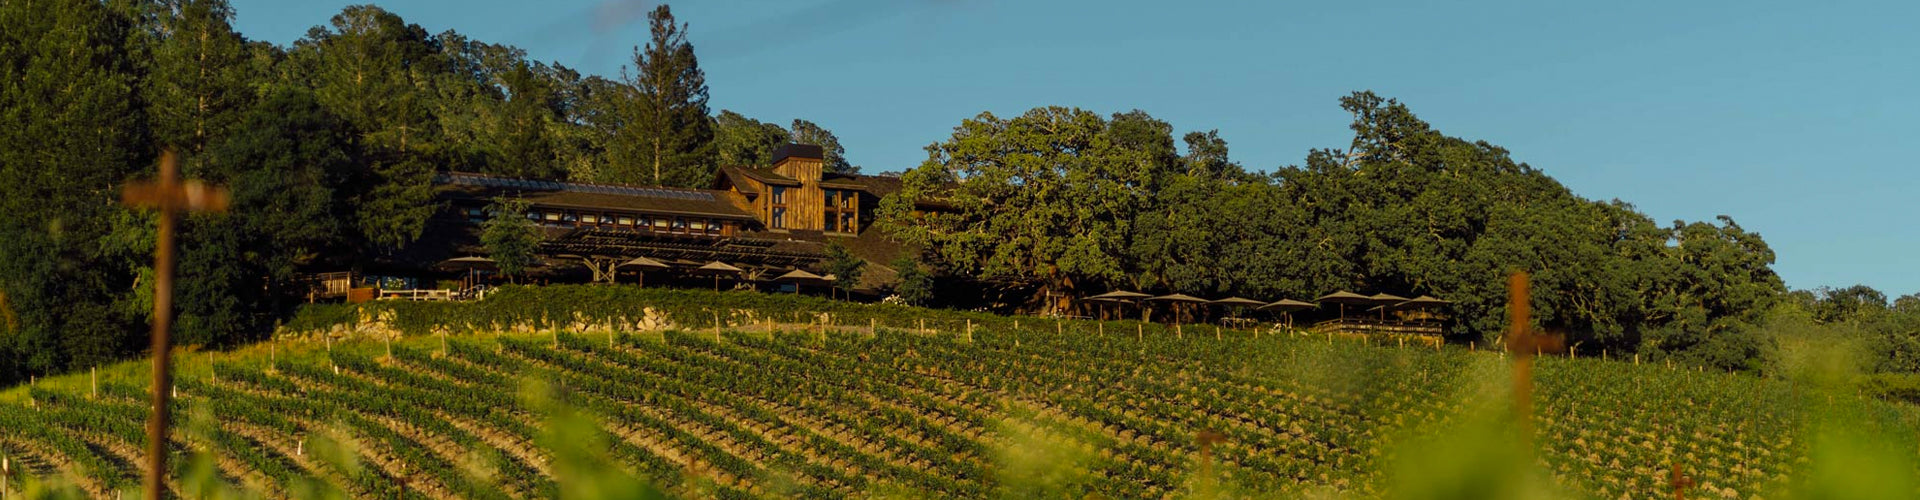 Joseph Phelps Winery & Vineyards in Napa Valley